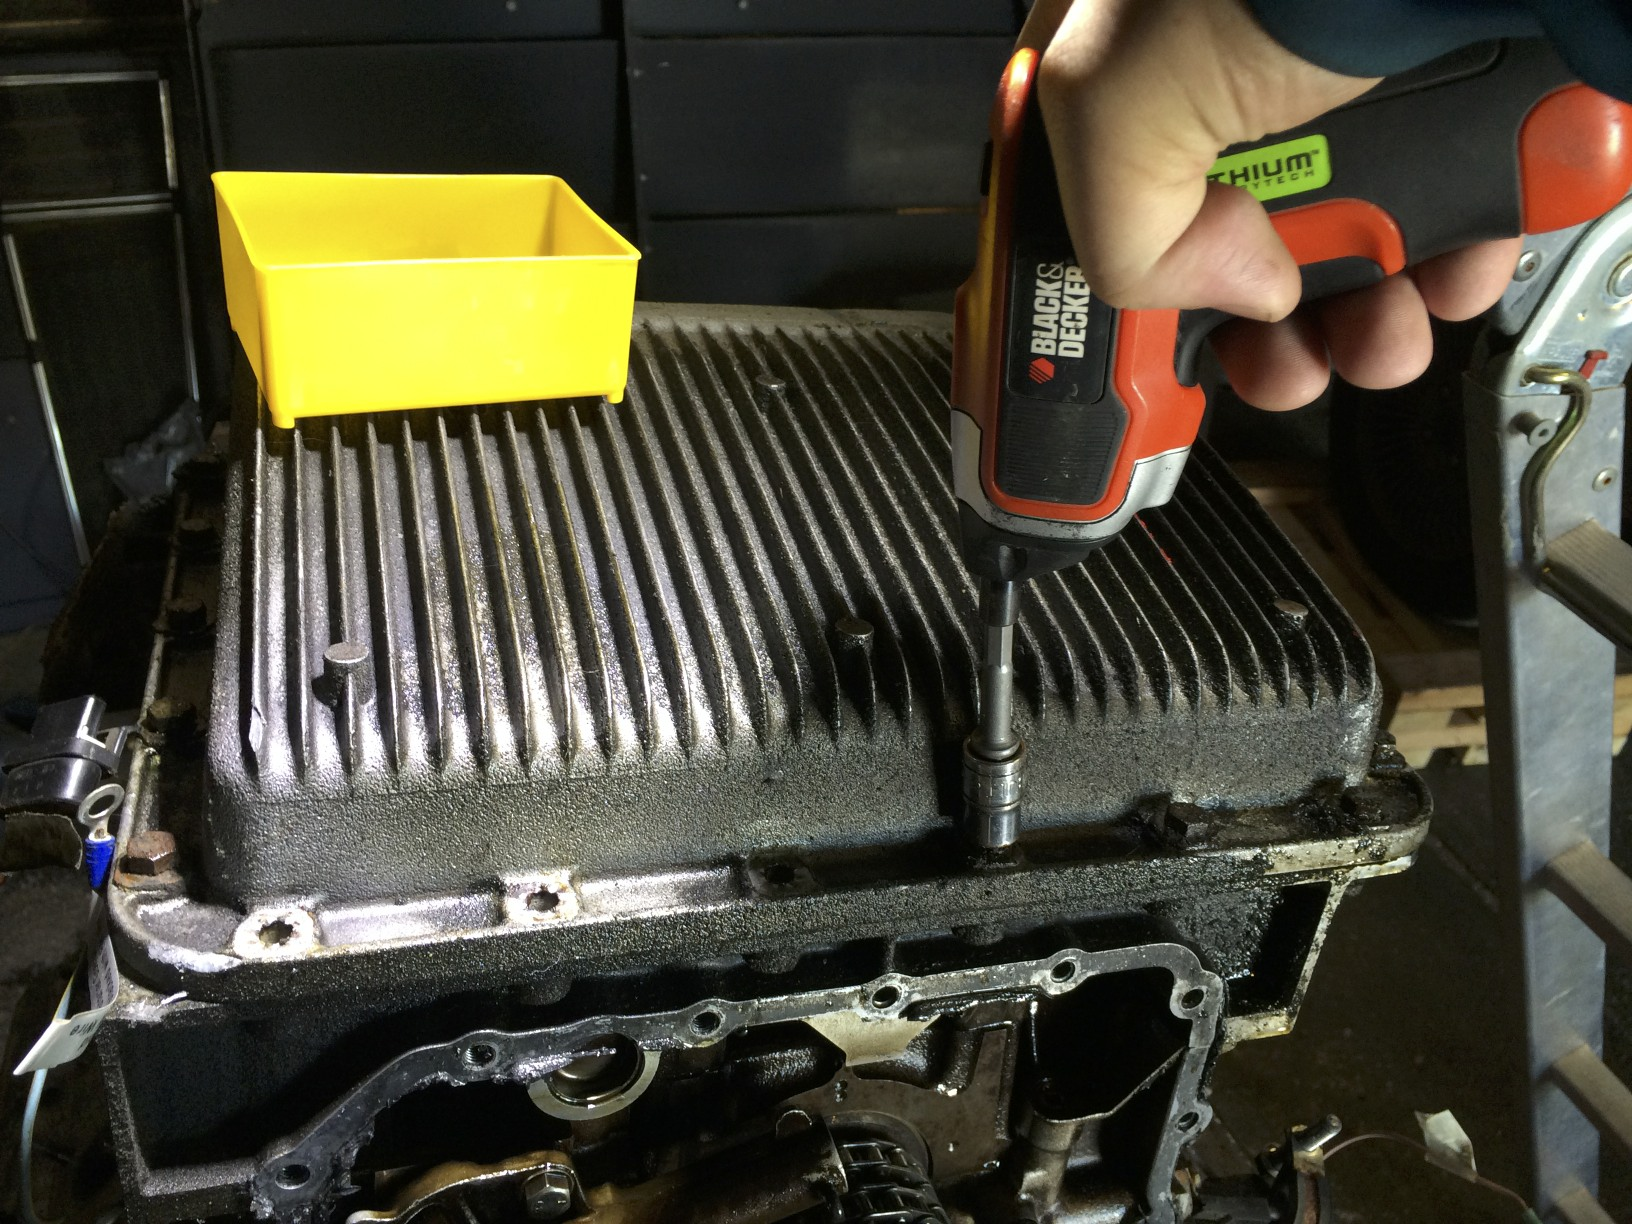 Removing the Bolts